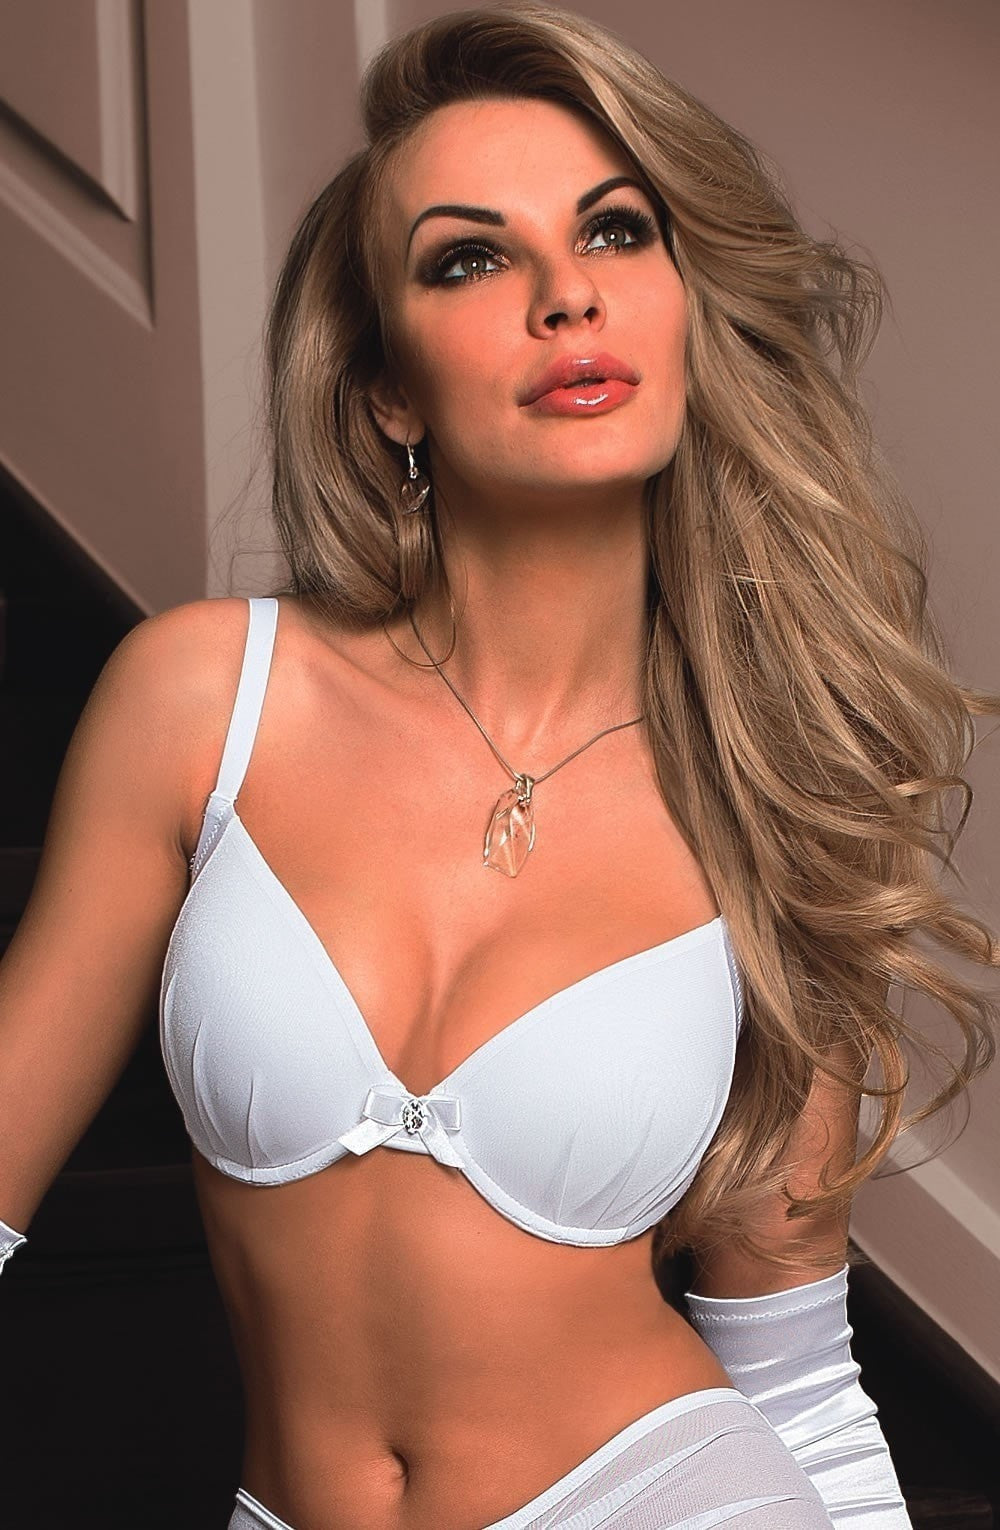 Roza Frosa Soft Cup Bra (White) - Soft Cup Bras - Roza - Charm and Lace Boutique